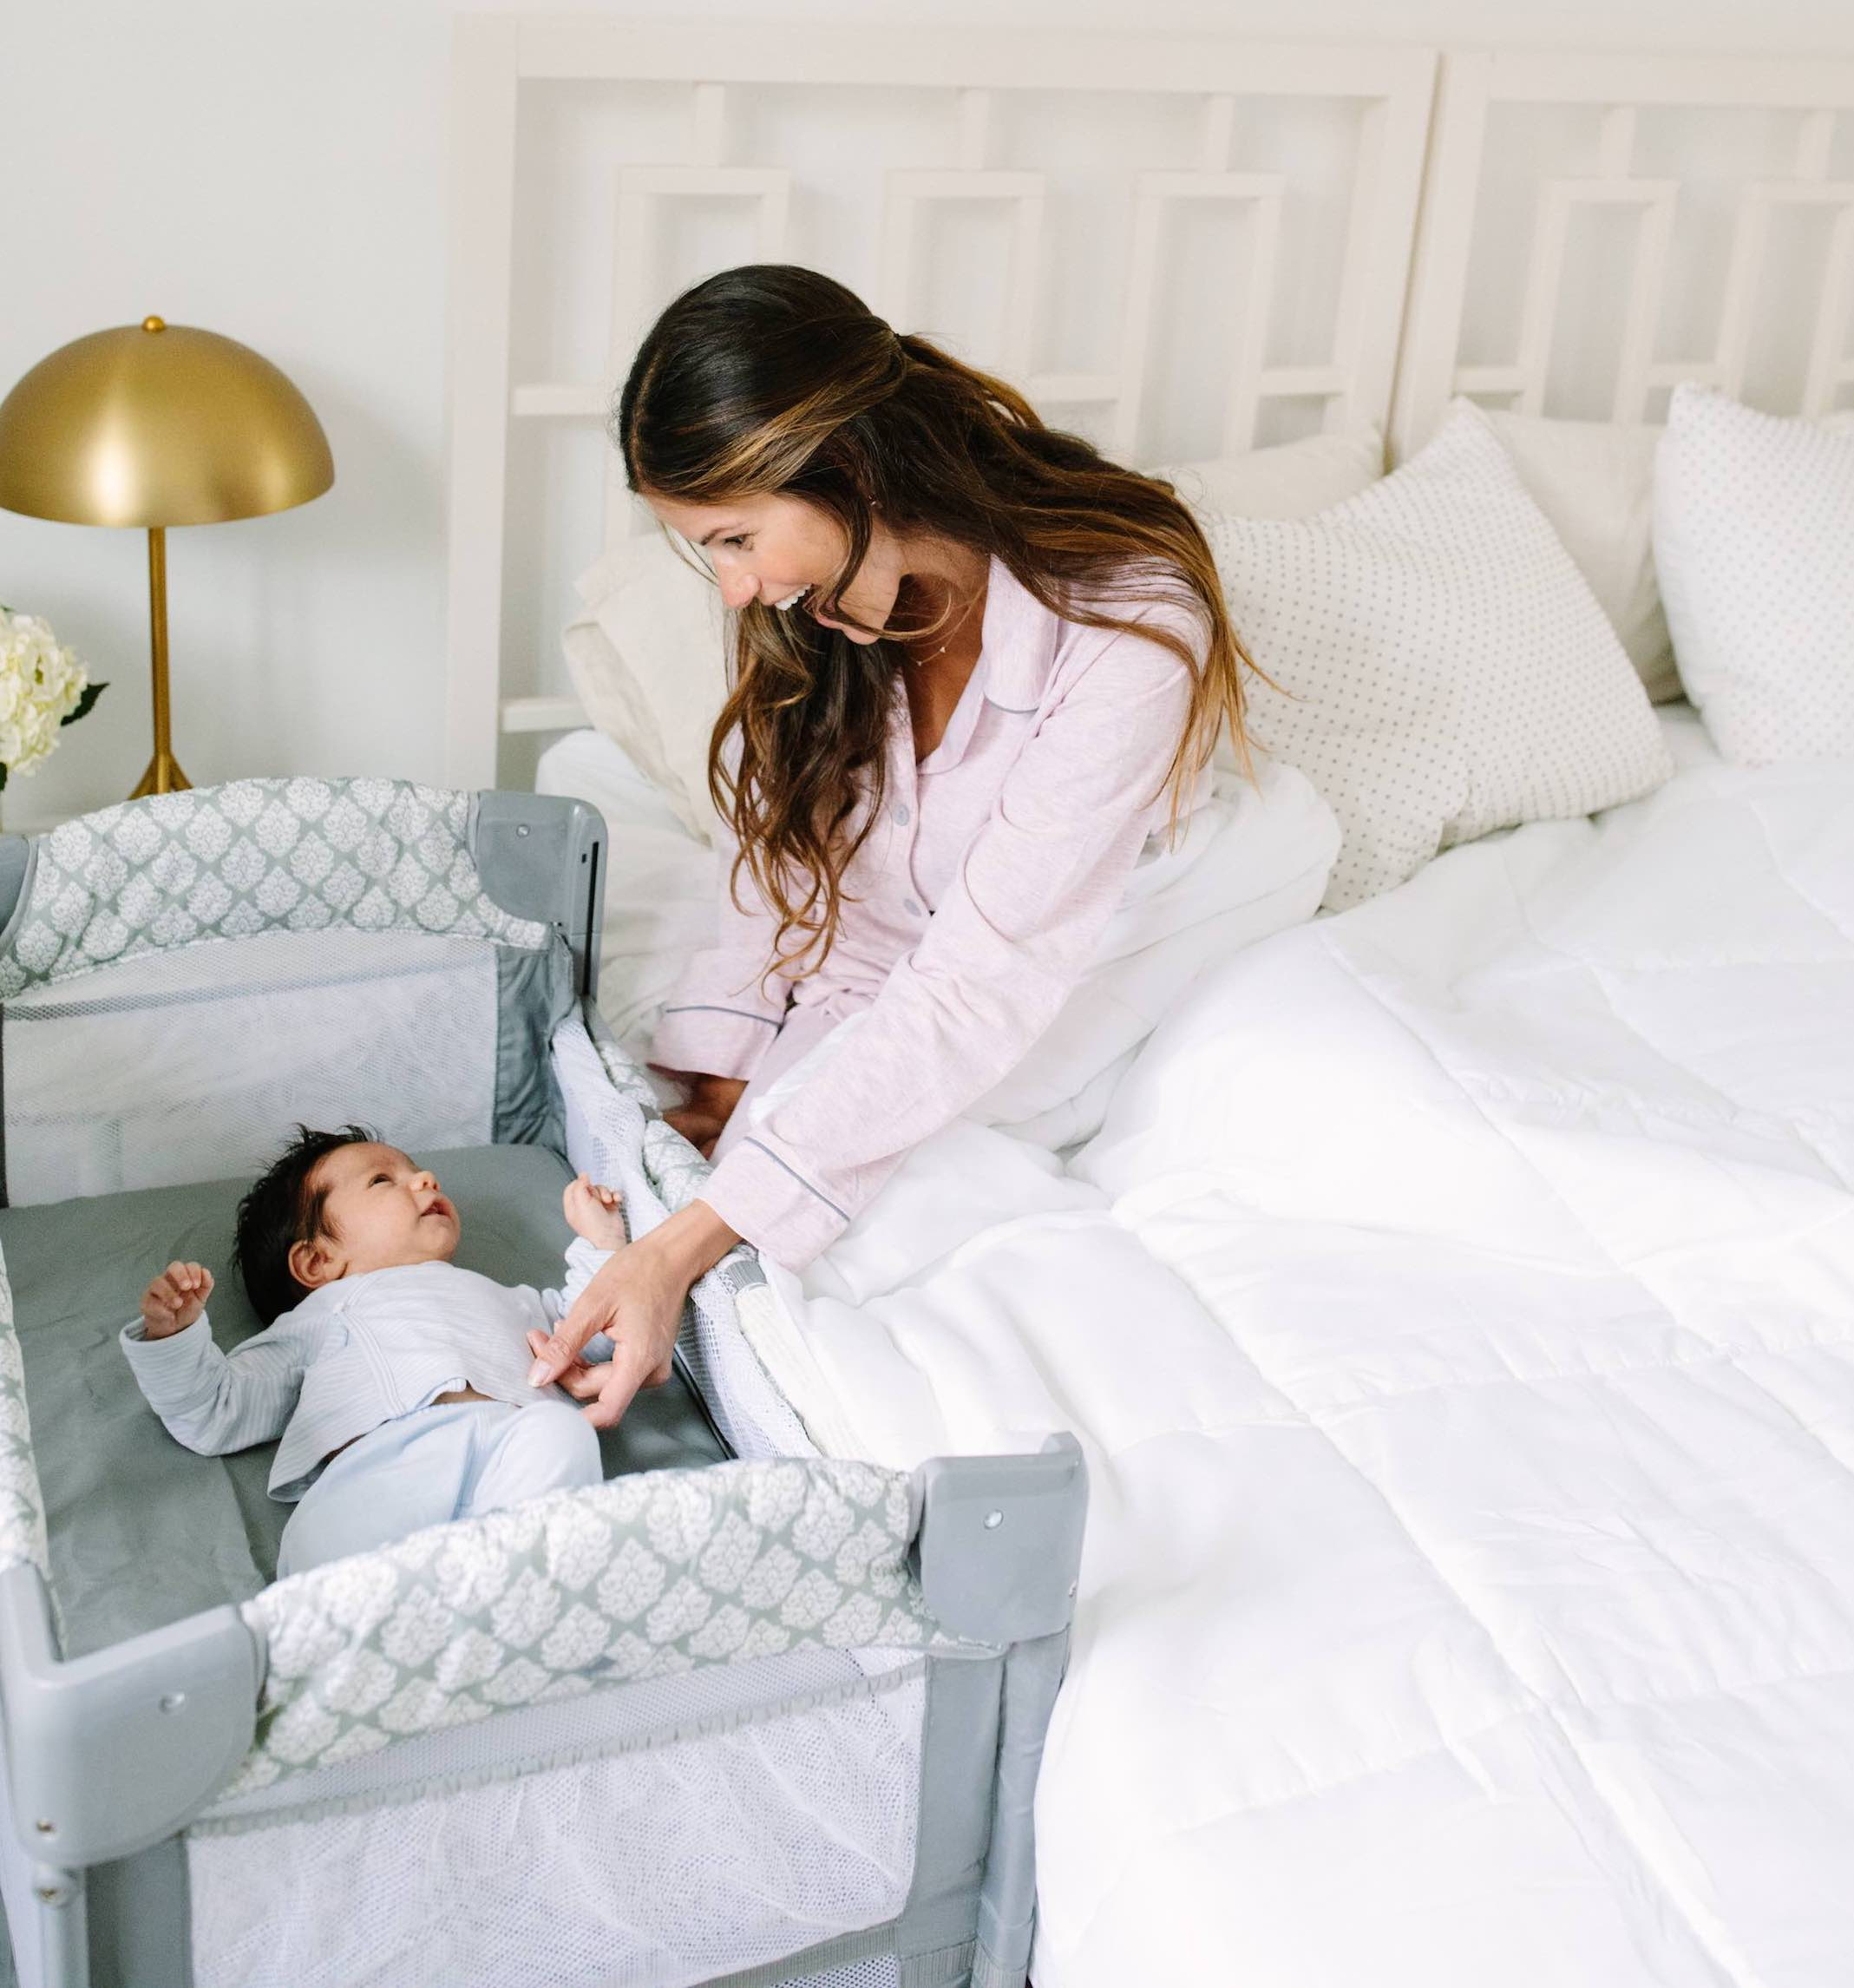 Arm's reach 3-in-1 co-sleeper bassinet grows with your baby